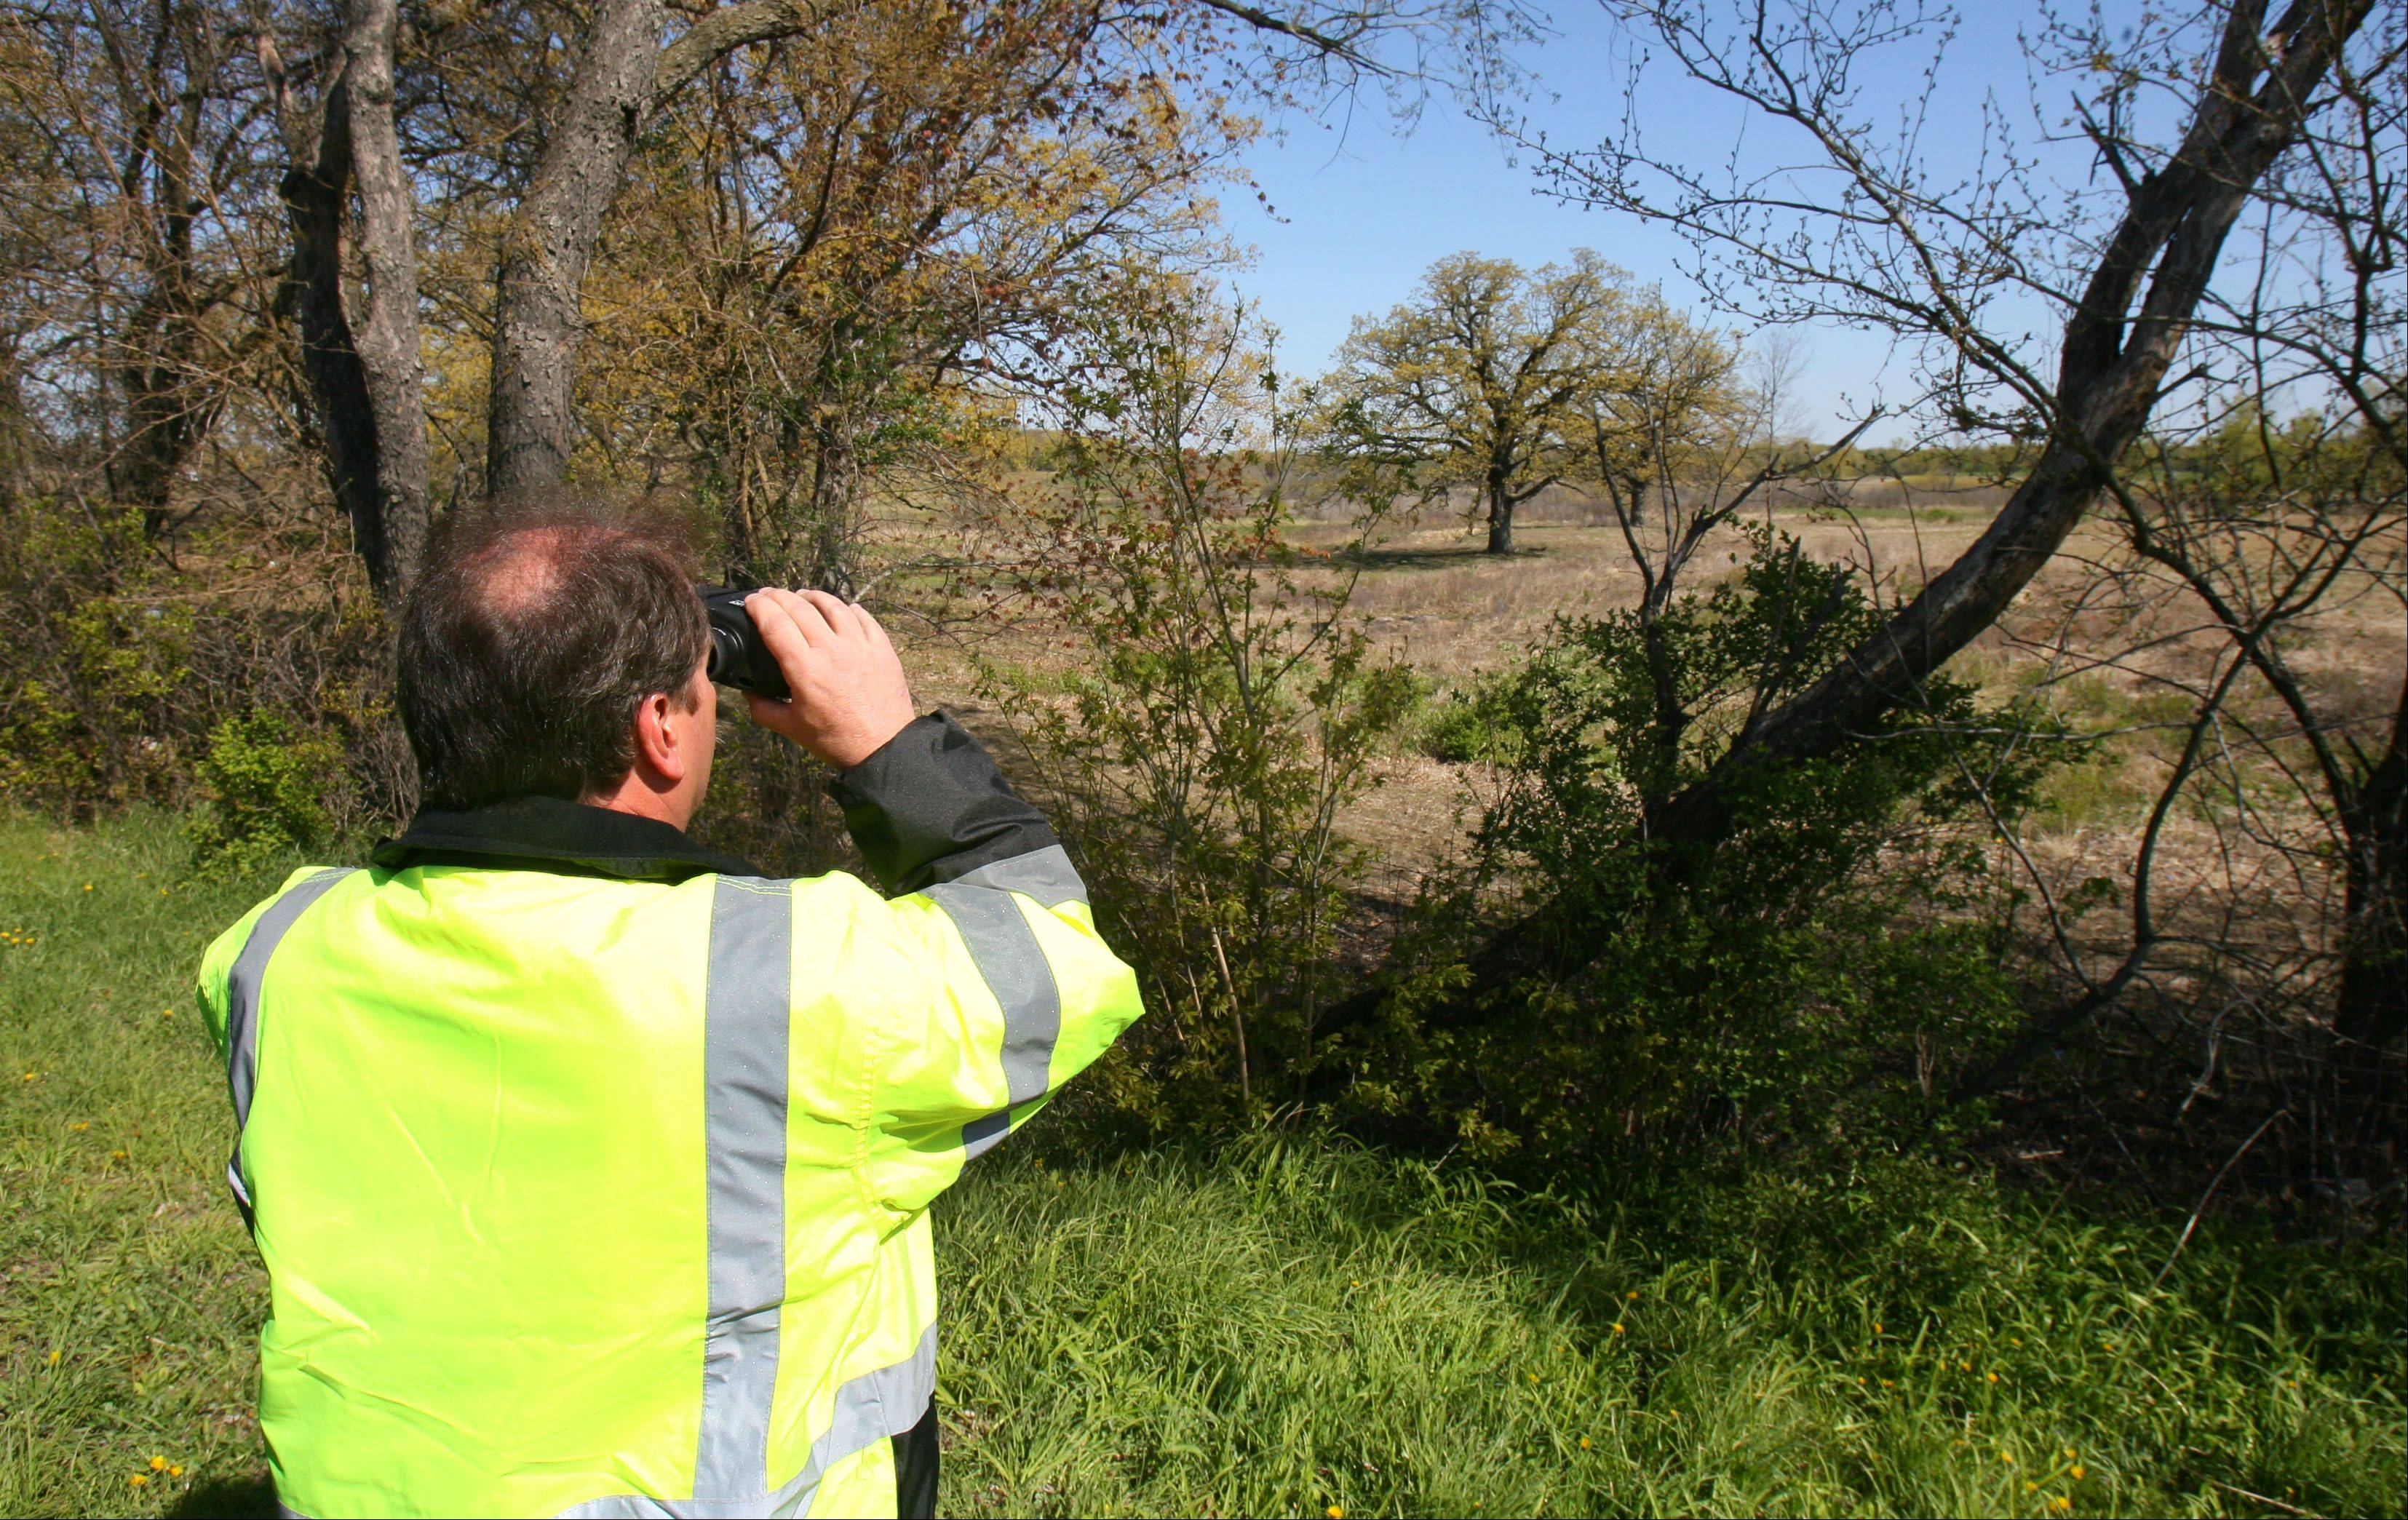 Brent Deppmeier, a volunteer and helicopter pilot from Air One Emergency Response, uses binoculars to survey an open area west of Volo Bog during a search for horses that escaped Wednesday's fire at Black Ties Stable in McHenry County.